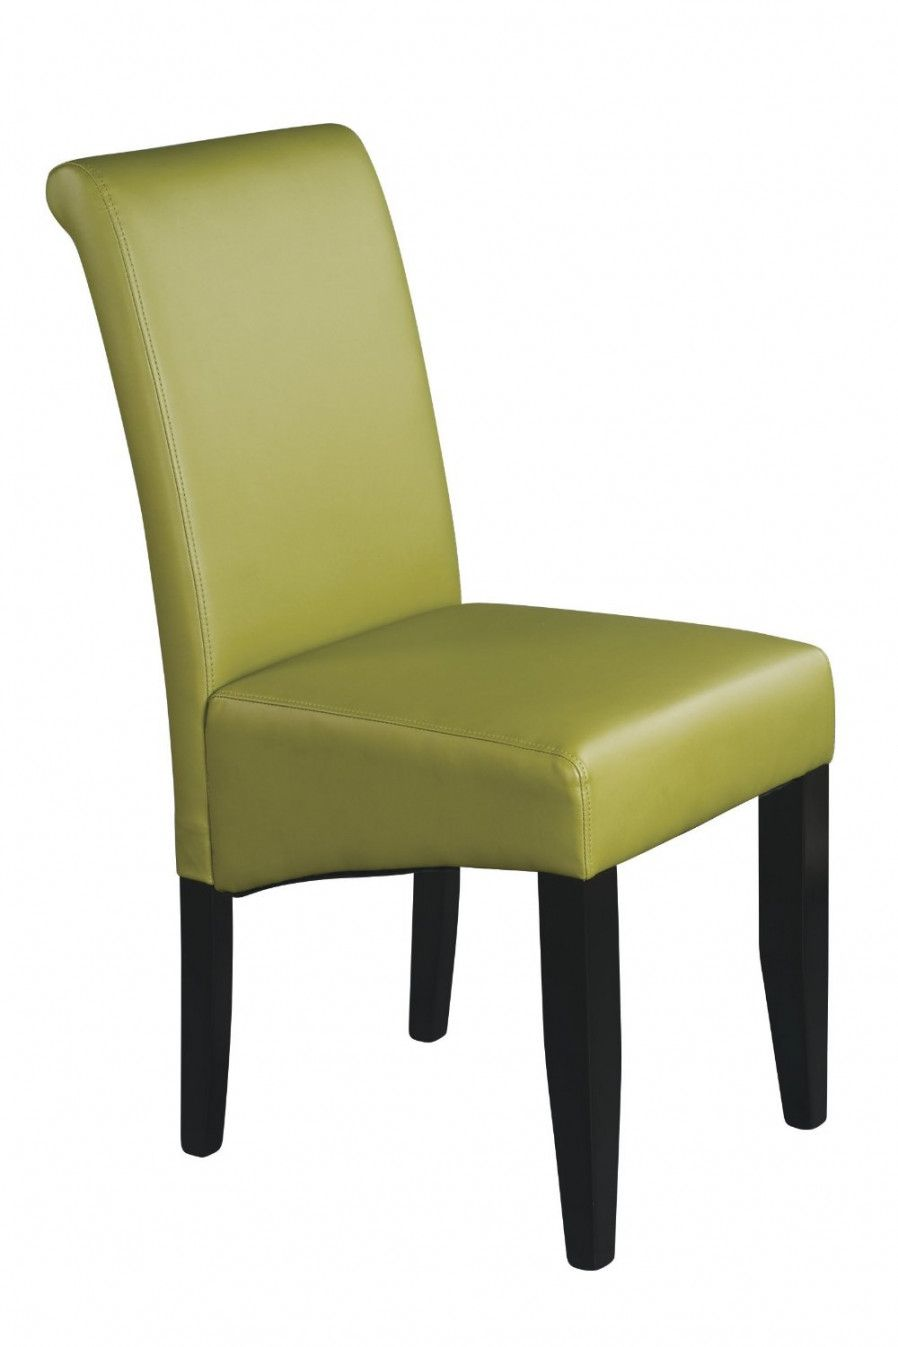 2019 Green Leather Dining Room Chairs  Elite Modern Furniture Alluring Green Leather Dining Room Chairs Inspiration